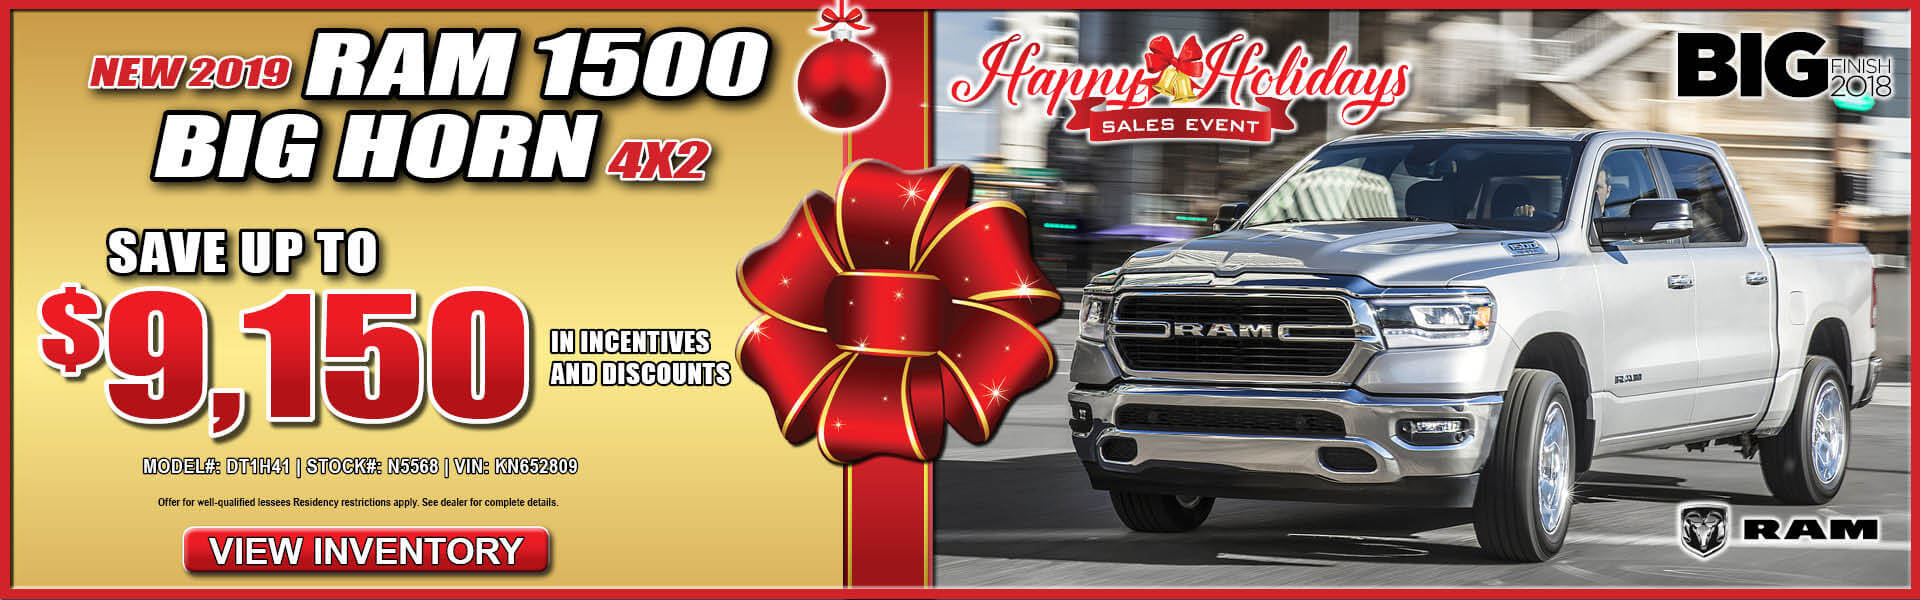 Ram Big Horn 1500 $9150 Incentives